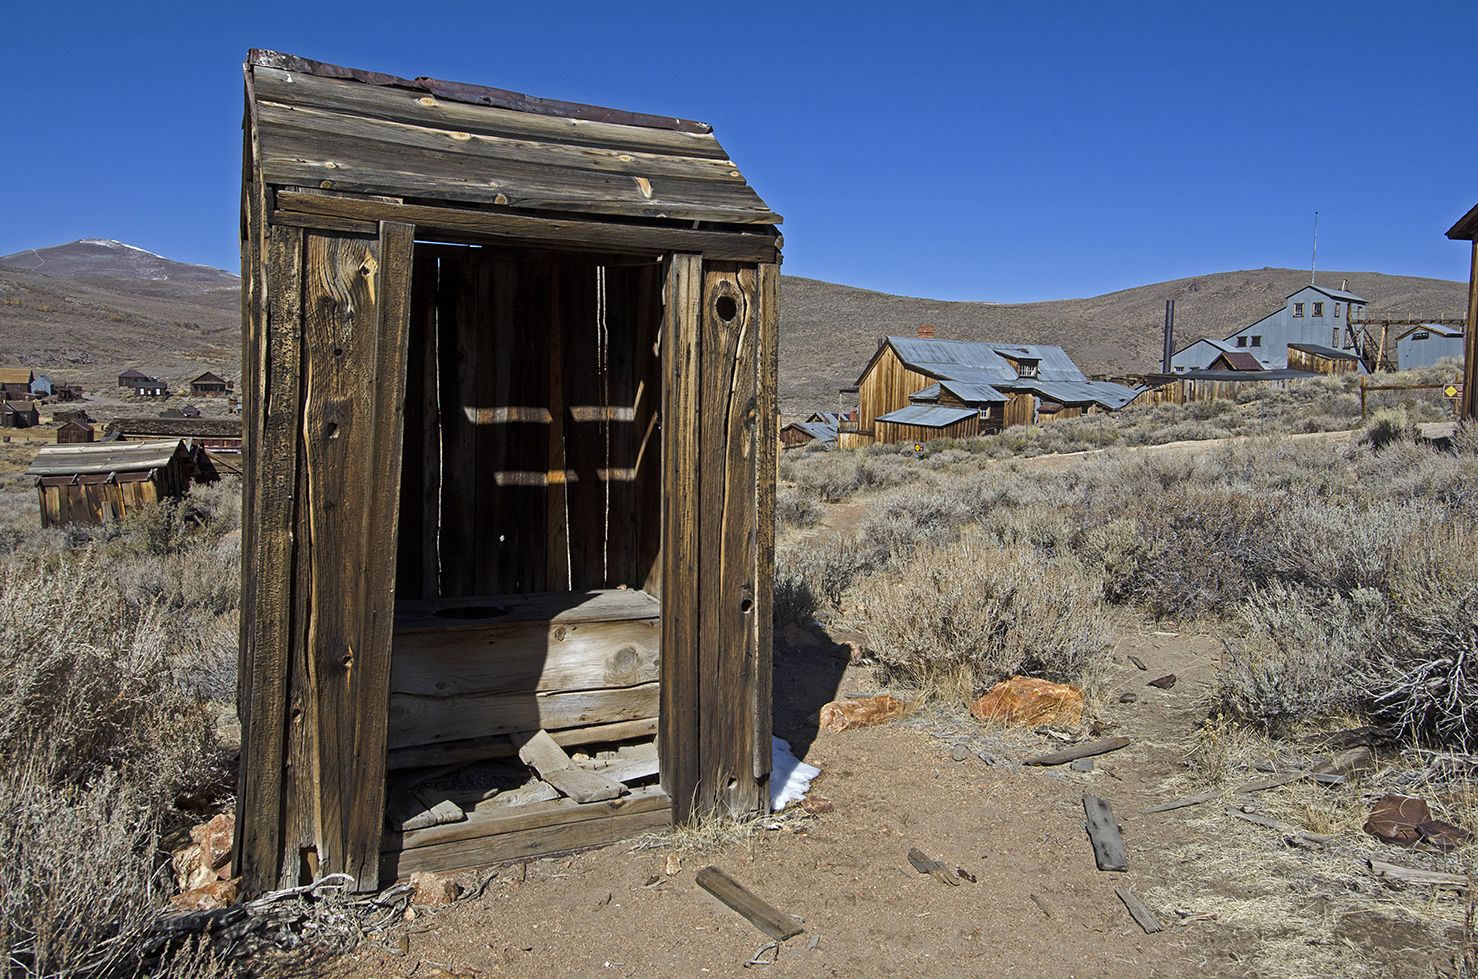 Lots of old outhouses are scattered about the town.